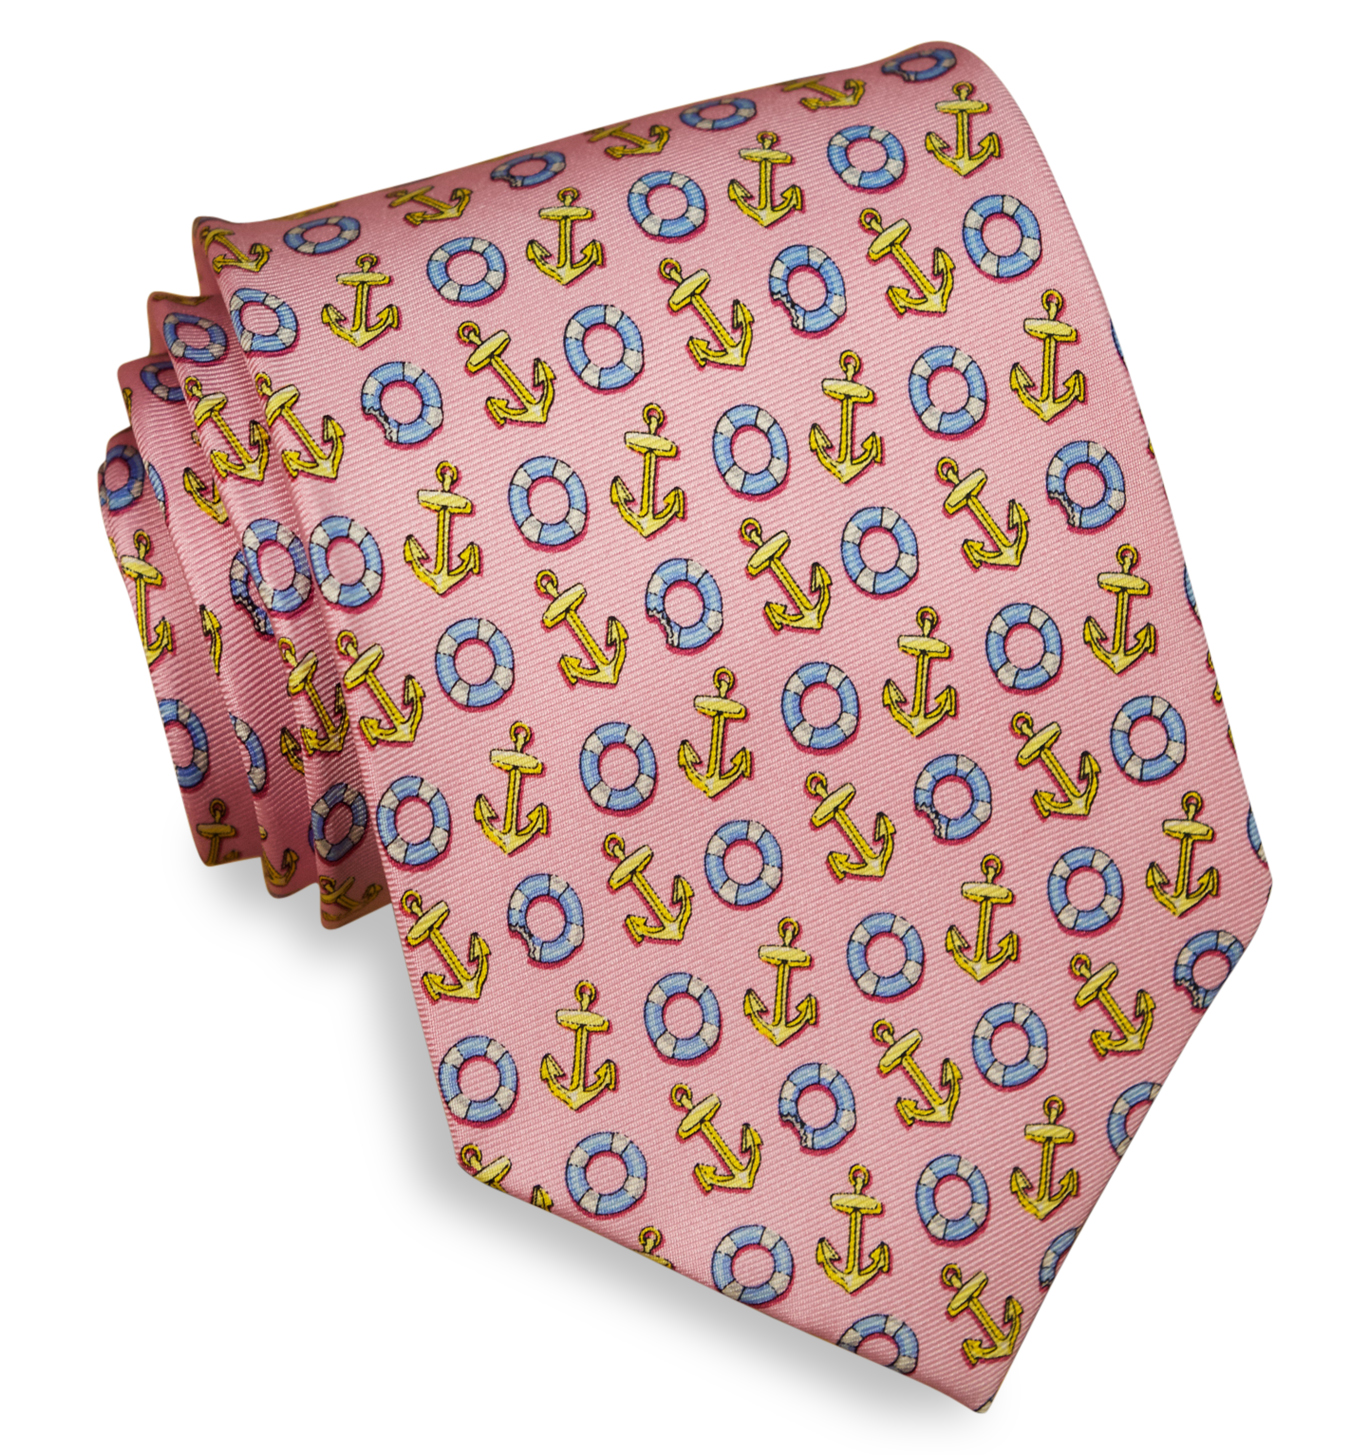 Anchors Aweigh: Tie - Pink